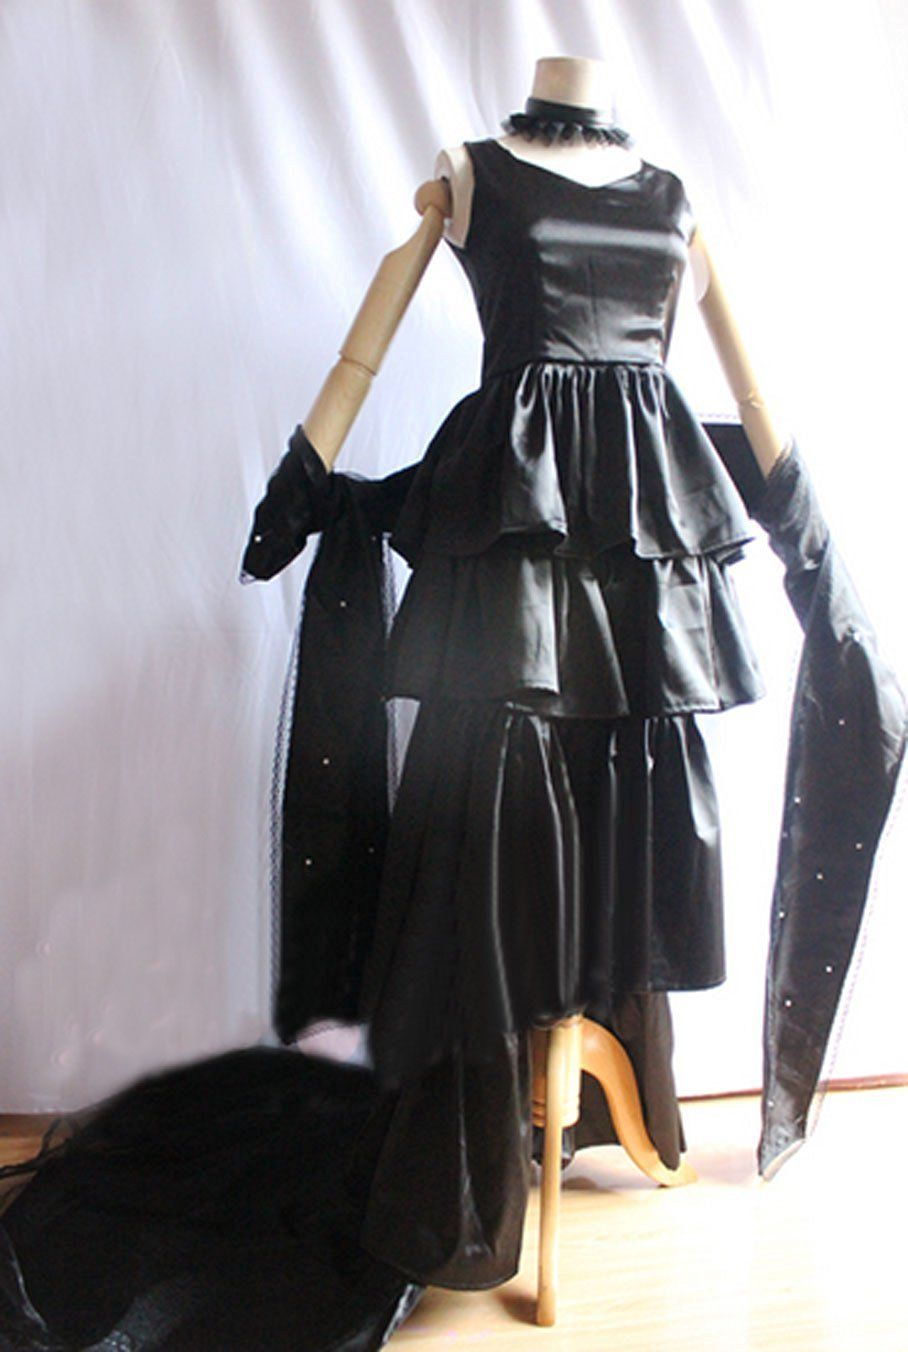 Cosenter anime tokyo ghoul sendasly black dress outfits cosplay